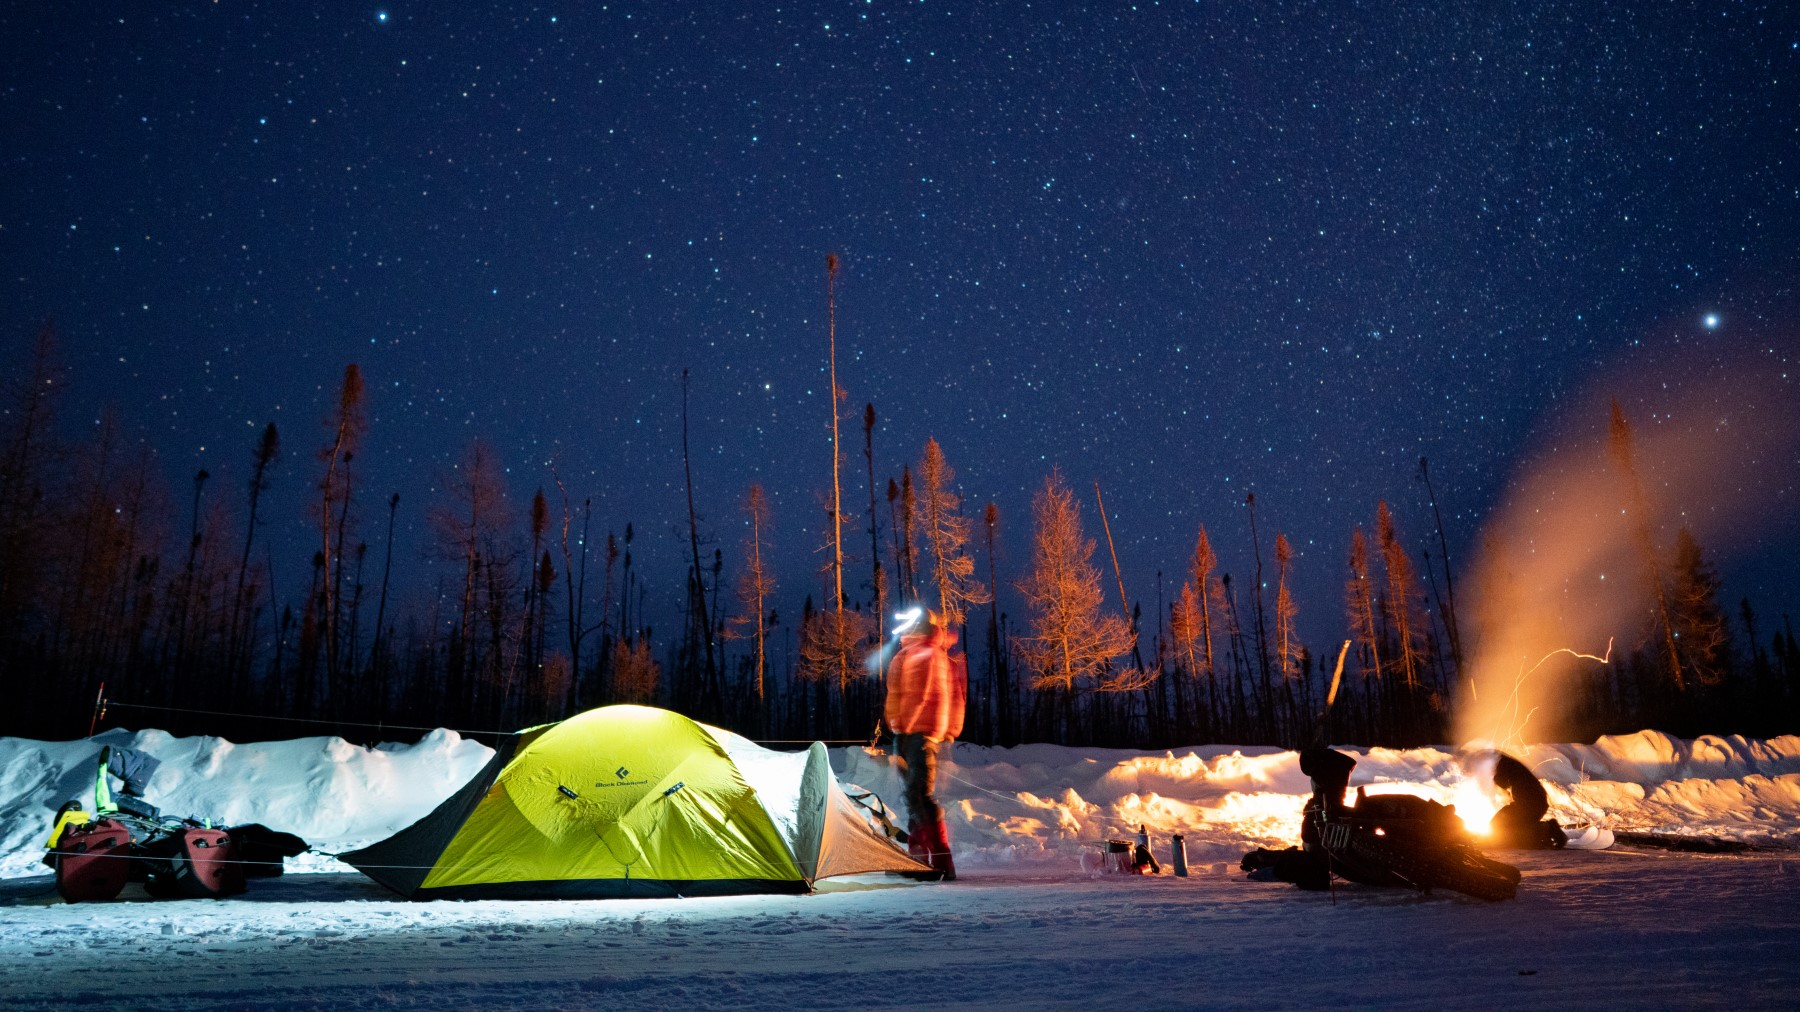 Riders setting up tents and fire at campsite in the snow at night